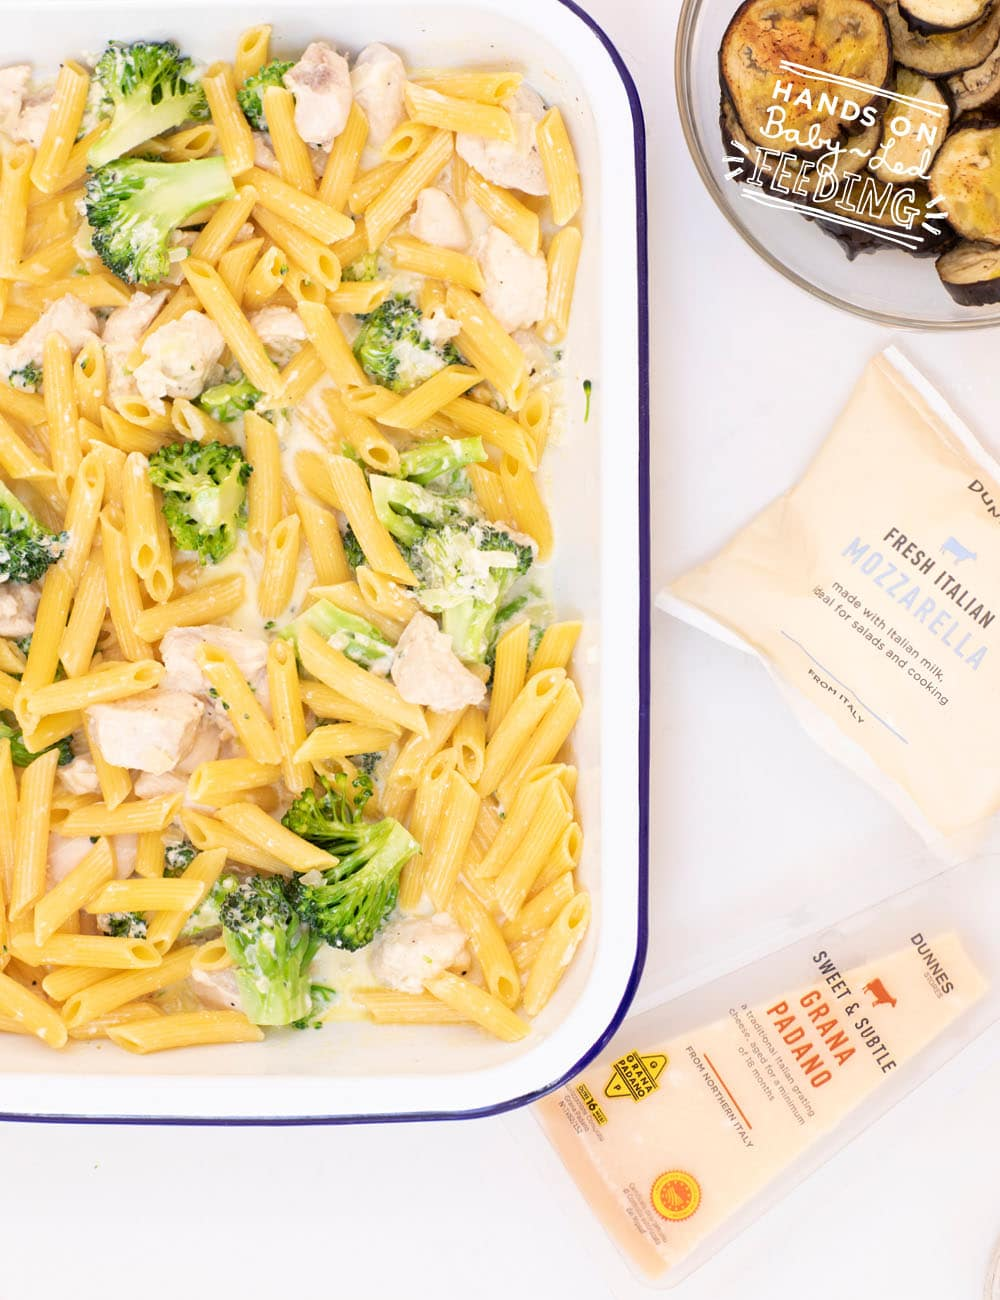 Hearty and Healthy Chicken Broccoli Pasta Bake for Baby Led Weaning. Grated goat cheese and Greek yogurt give this pasta dish a unique flavour that even picky eaters will crave! #babyledweaning #babyledfeeding #pickyeater